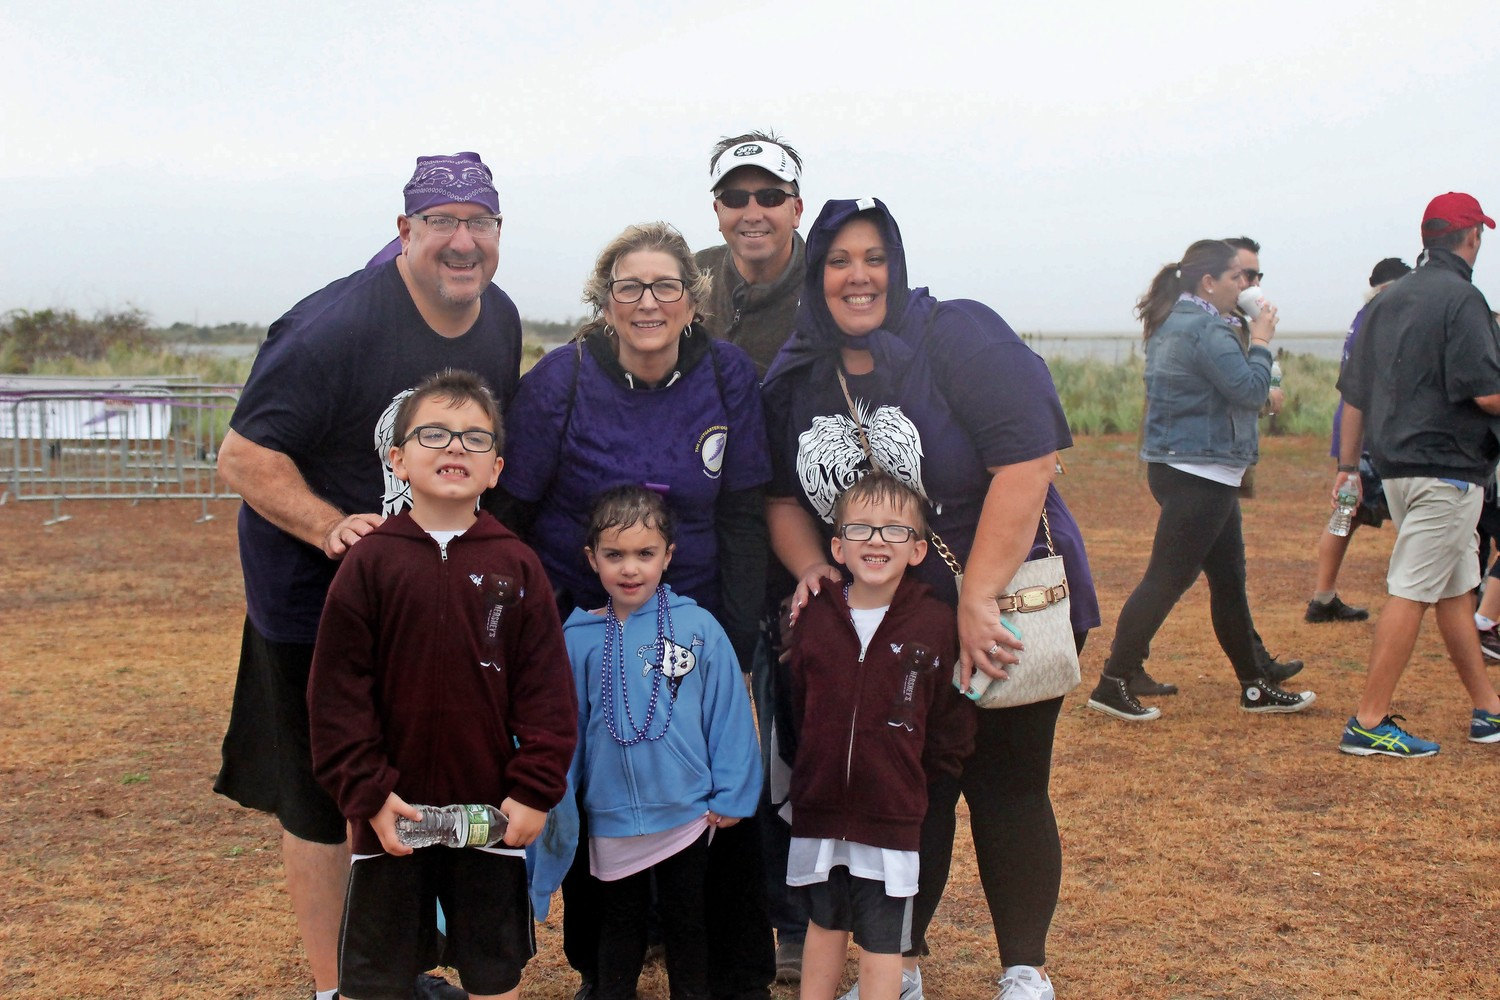 The Iacopelli and Raucci families made the best of rainy conditions at the Long Island Pancreatic Cancer Research Walk at Jones Beach State Park in Wantagh on Oct. 8. The Lustgarten Foundation sponsored the event at Field 5.